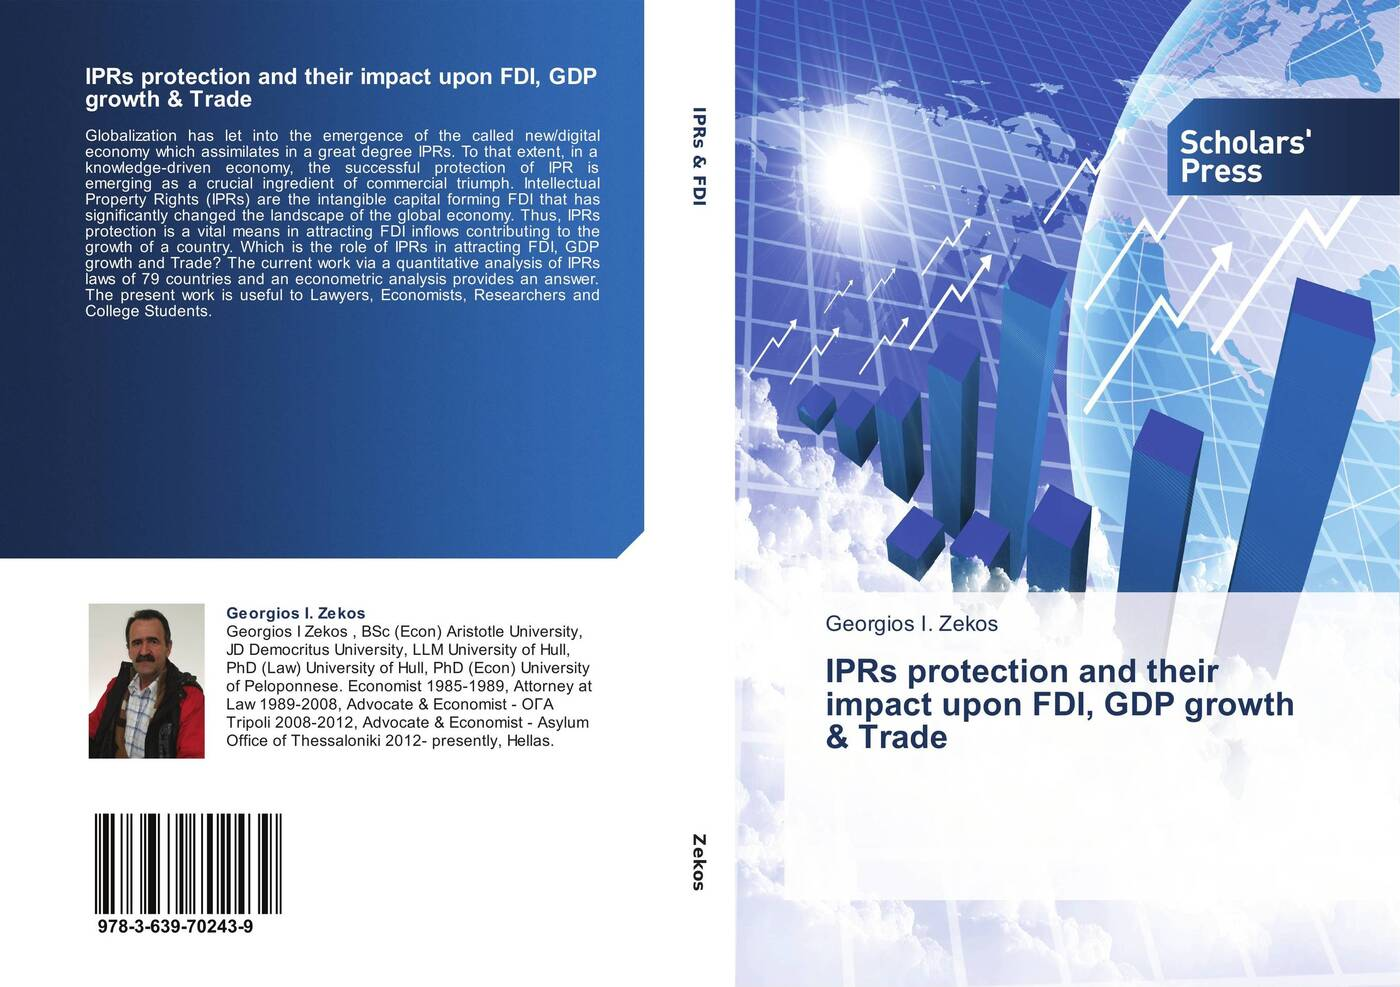 Фото - Georgios I. Zekos IPRs protection and their impact upon FDI, GDP growth & Trade greg linsdell the emergence growth and implications of private policing in victoria